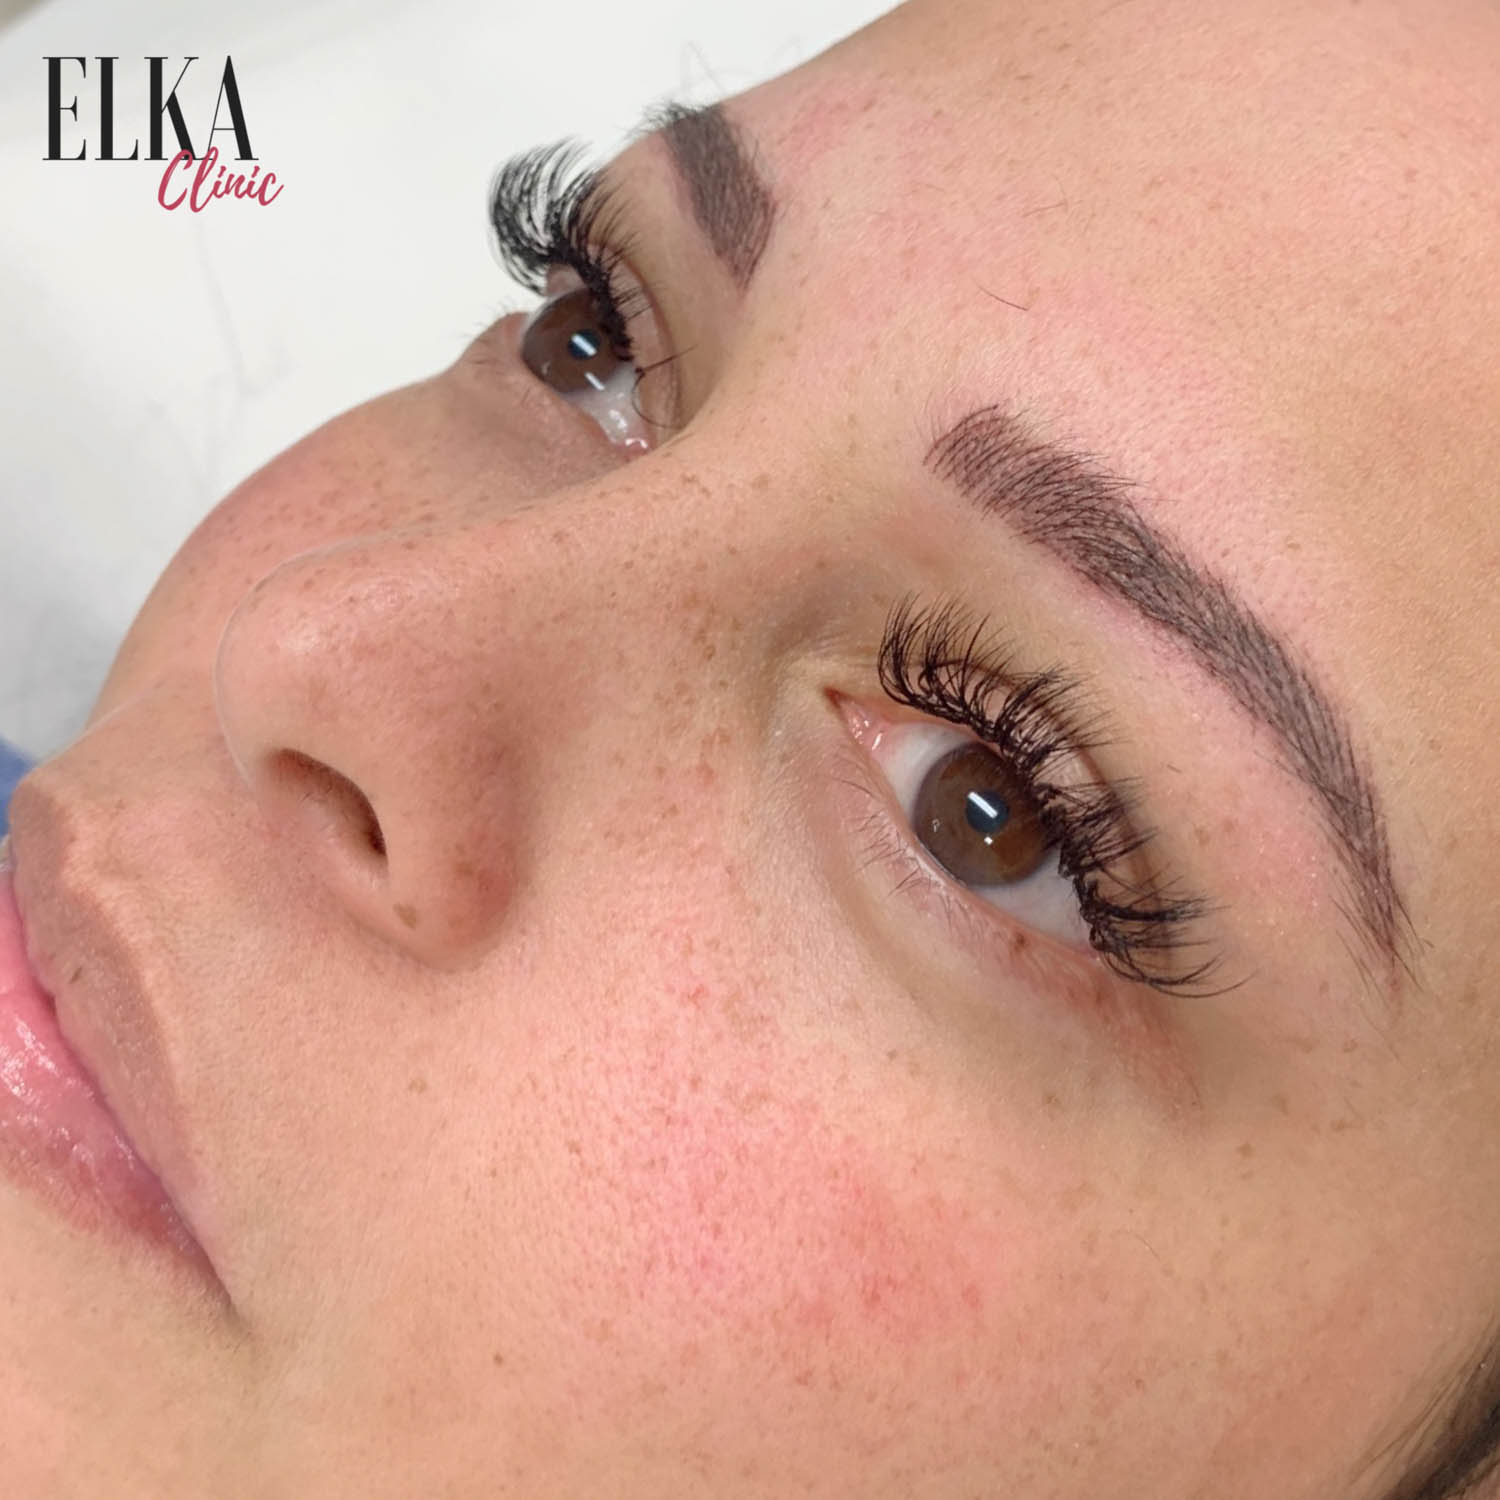 tattooed eyebrow correction